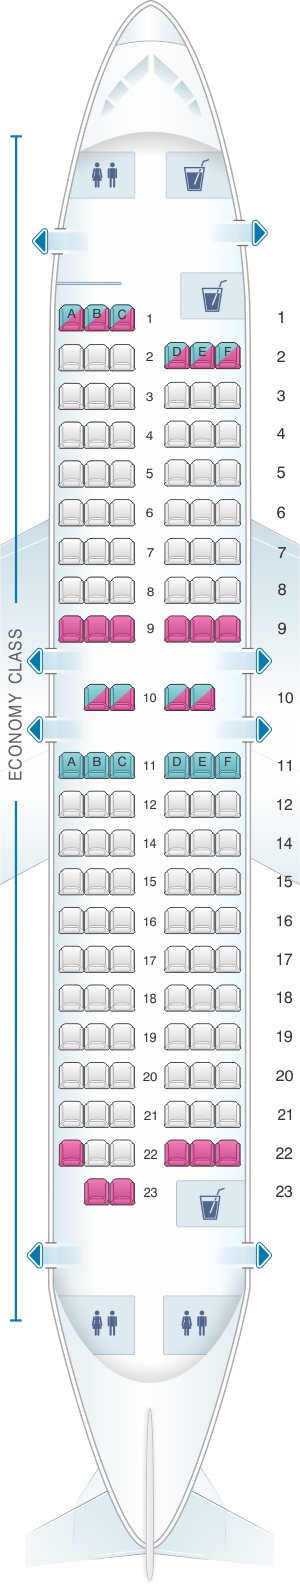 Seat map for Scandinavian Airlines (SAS) Boeing B737 600